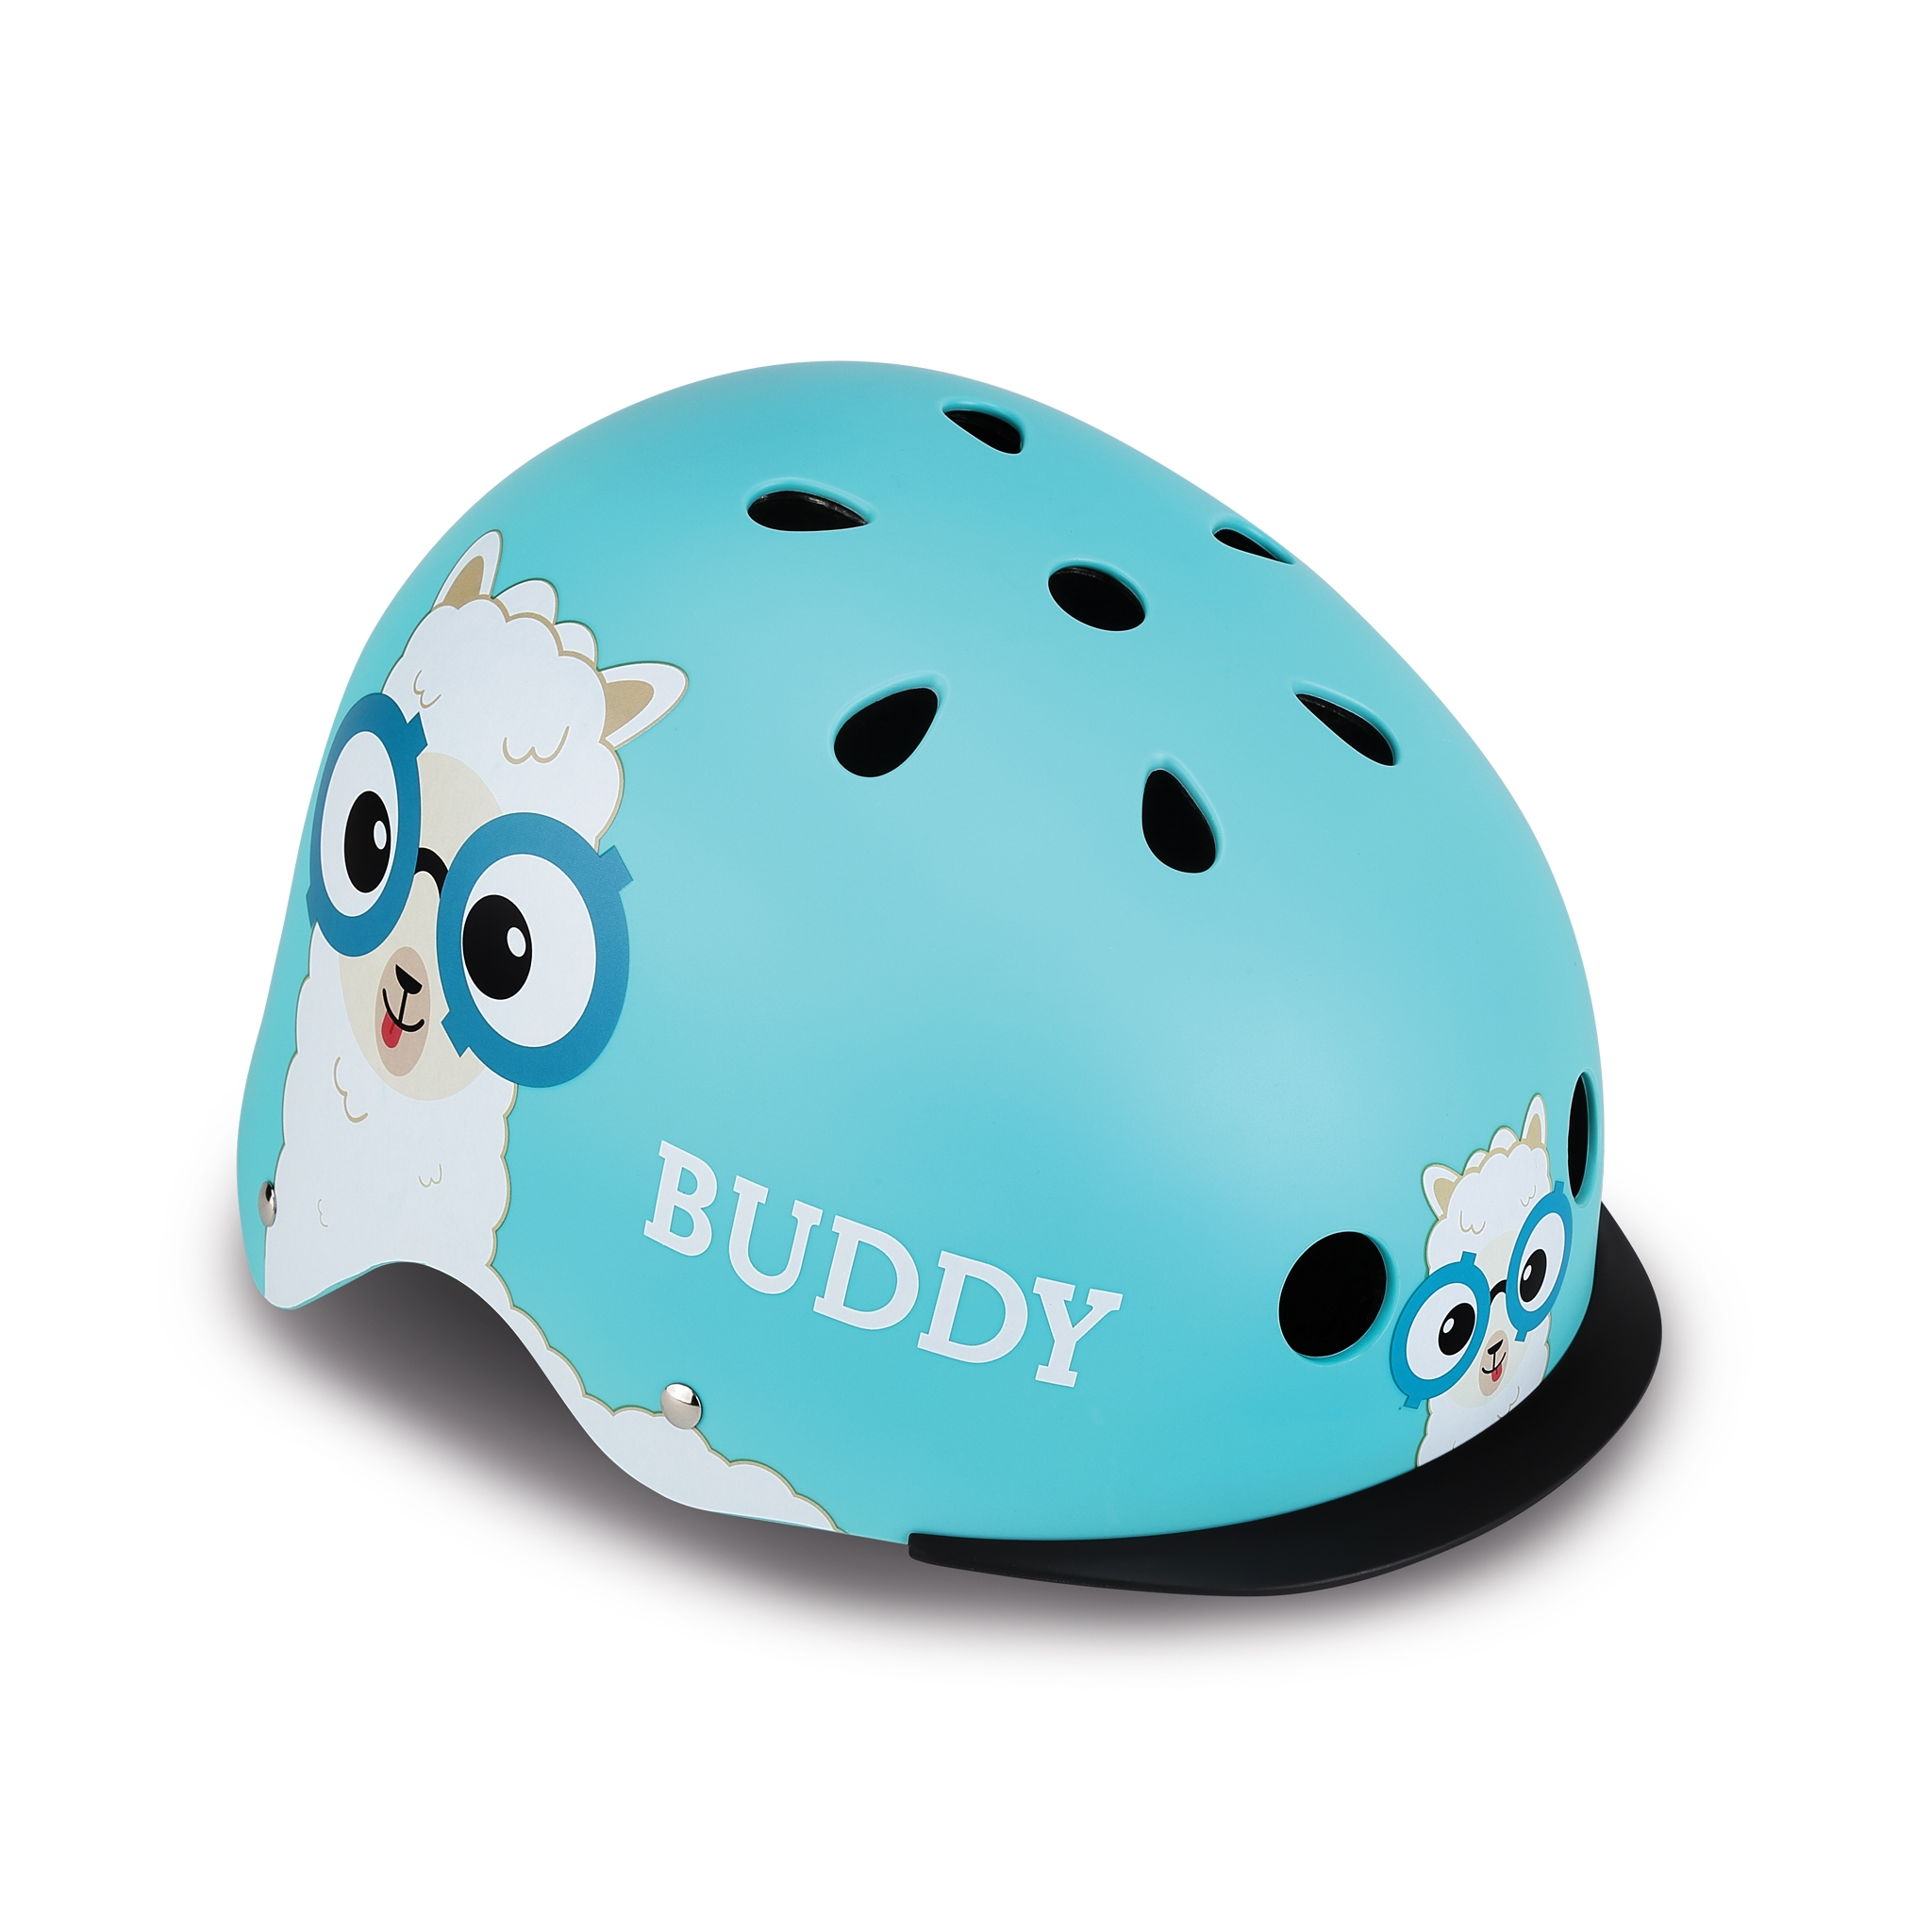 ELITE-helmets-scooter-helmets-for-kids-in-mold-polycarbonate-outer-shell-blue